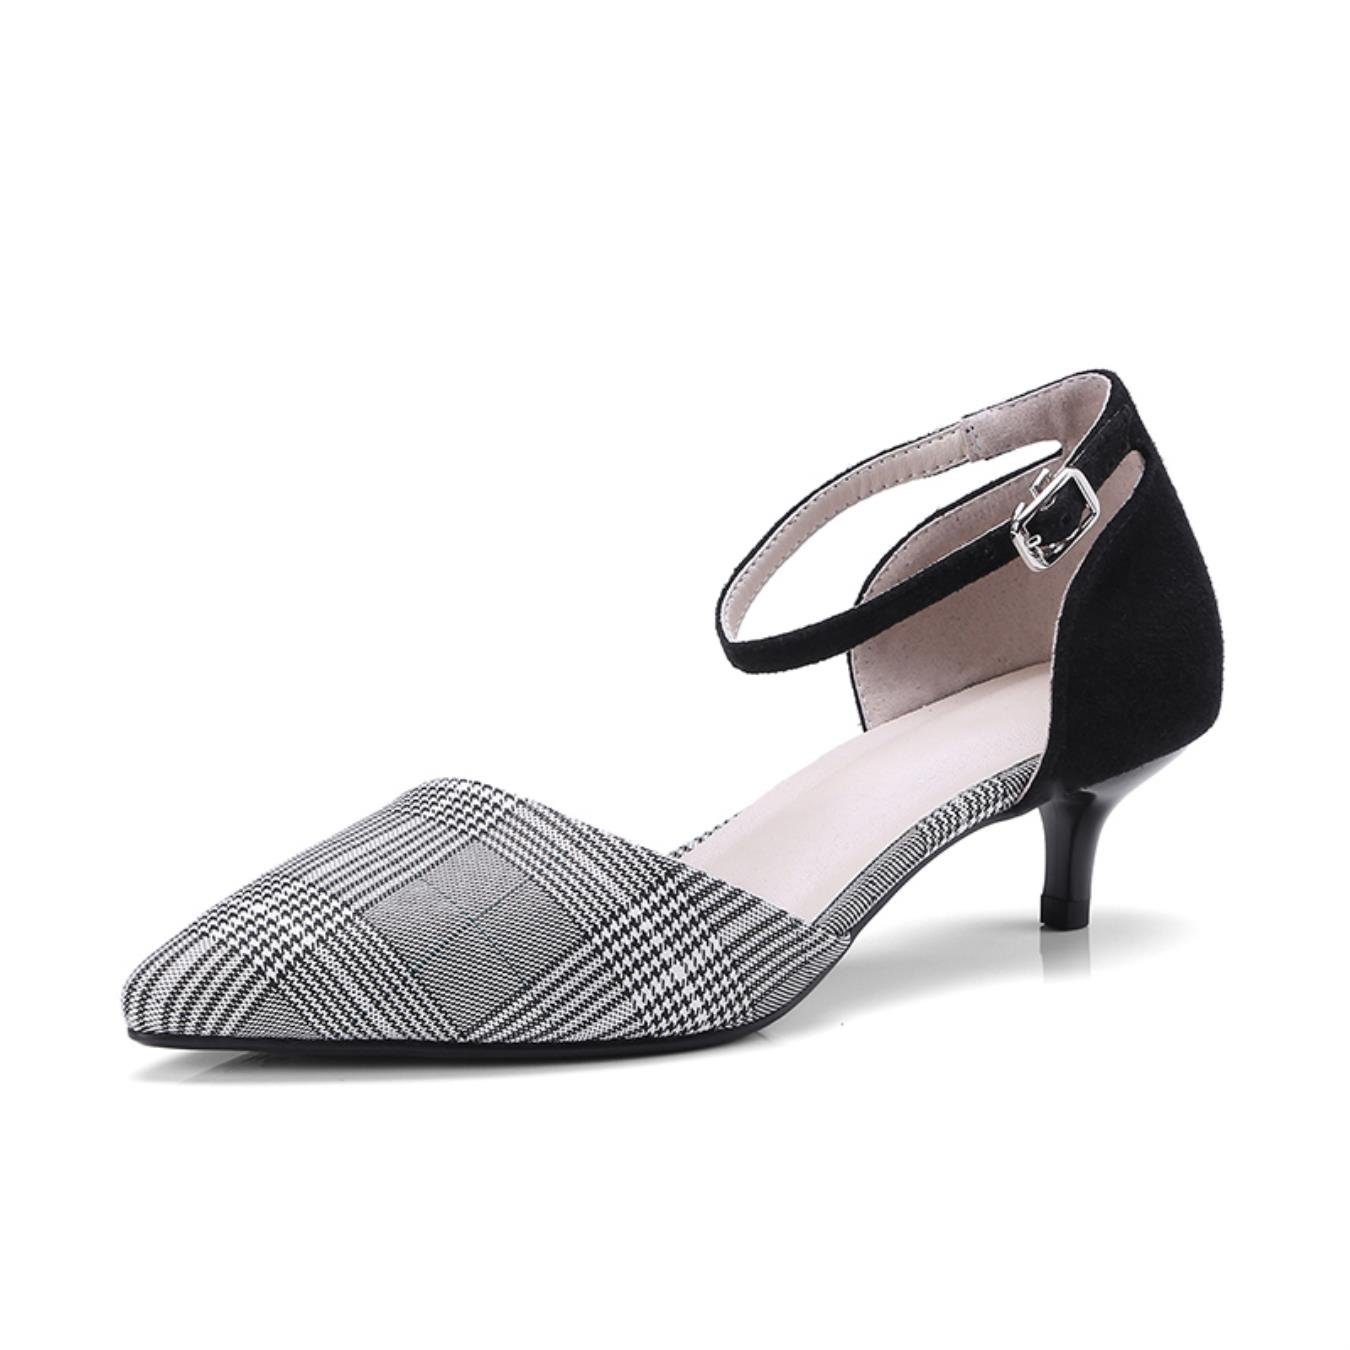 ISNOM 2018 Summer Thin Heels Sandals Women Kid Suede Plaid Pointed Toe Footwear New Ankle Strap Office Ladies Shoes Big Size